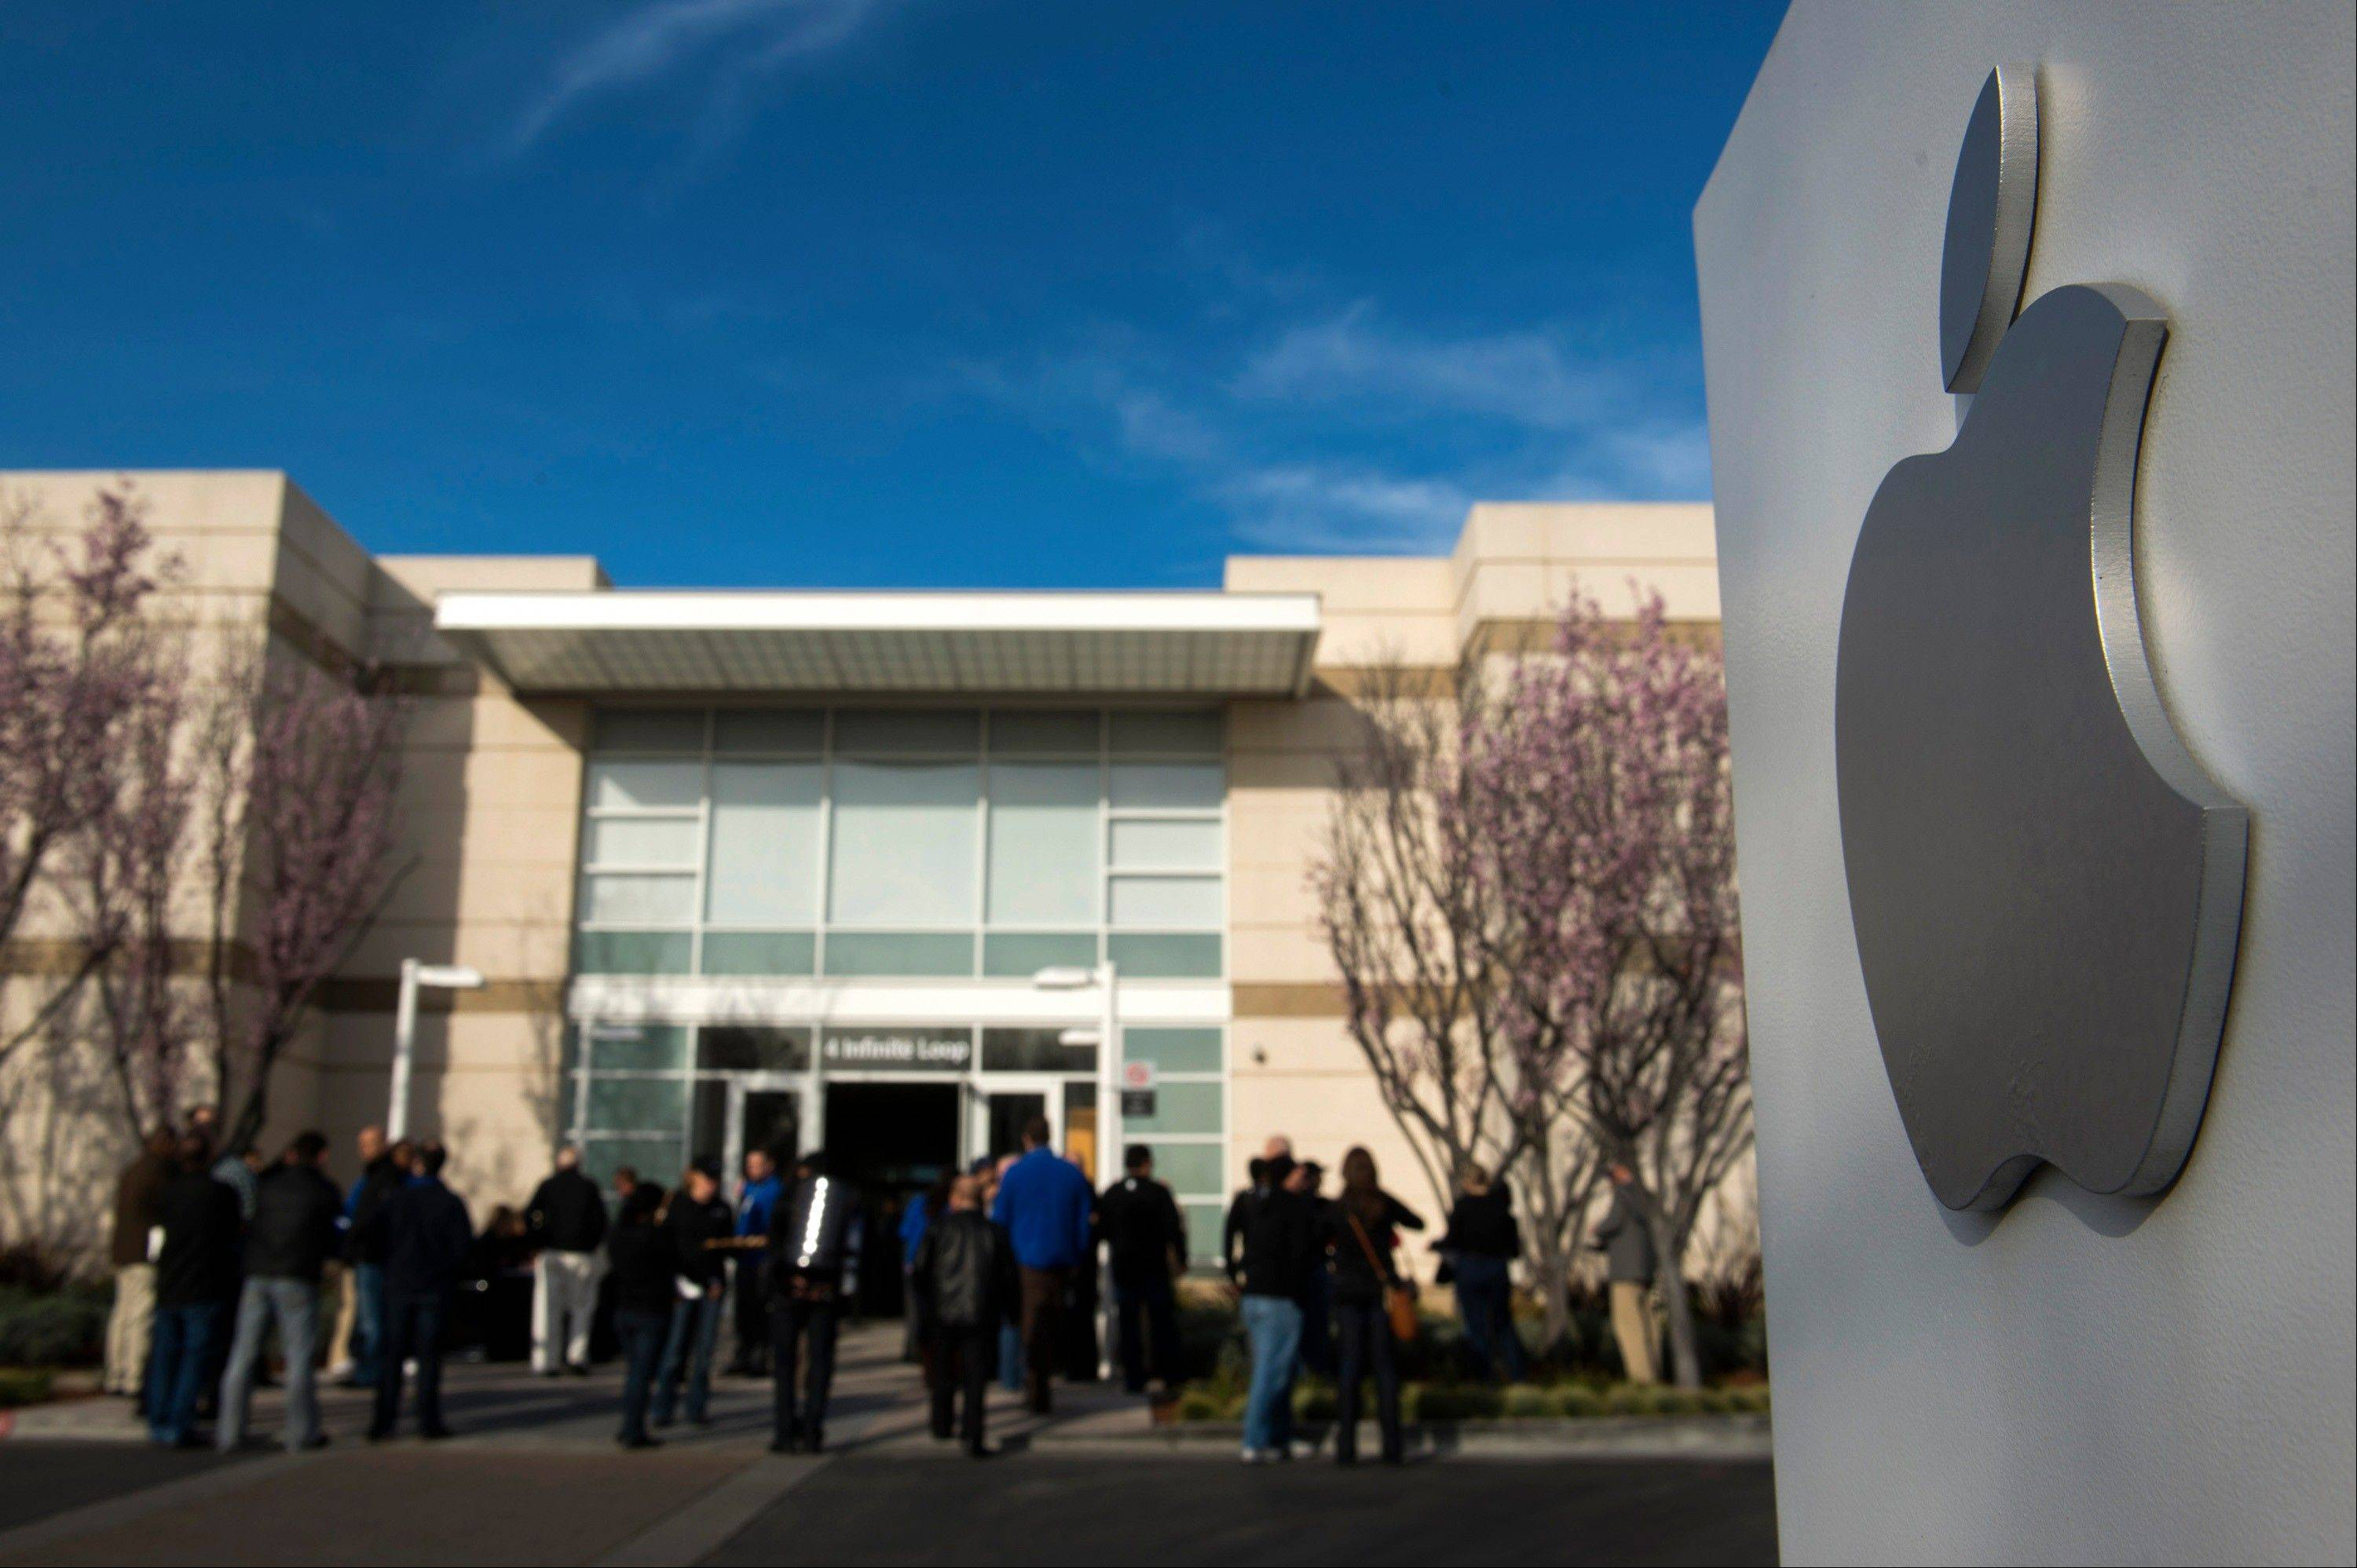 Attendees arrive at the Apple Inc. shareholders meeting Wednesday at the company's headquarters in Cupertino, Calif.